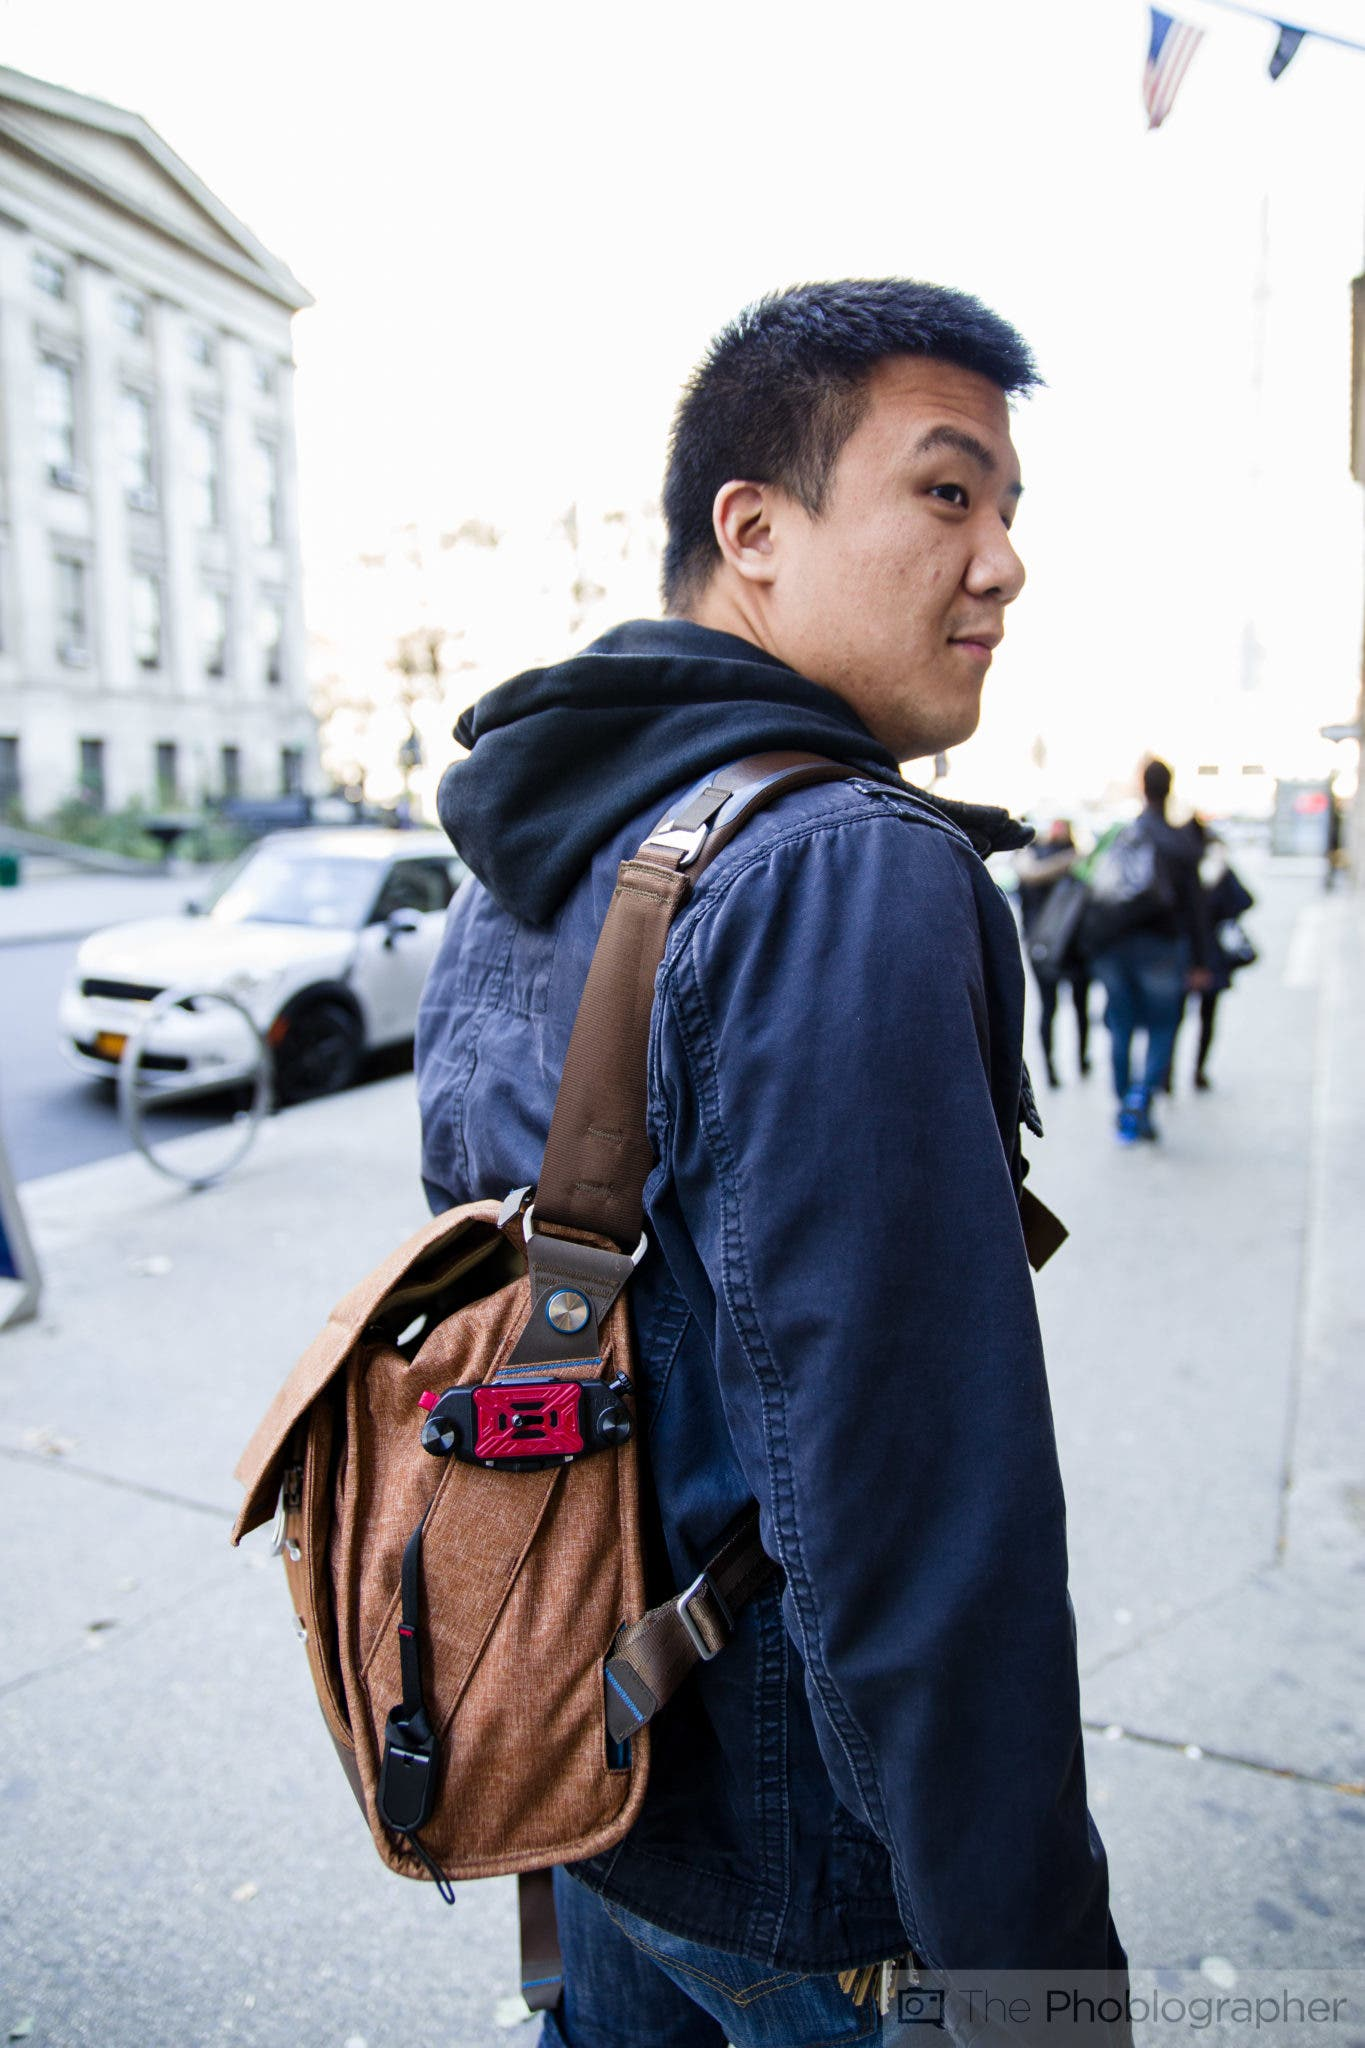 The 13′ Peak Design Everyday Messenger Bag is a Reality